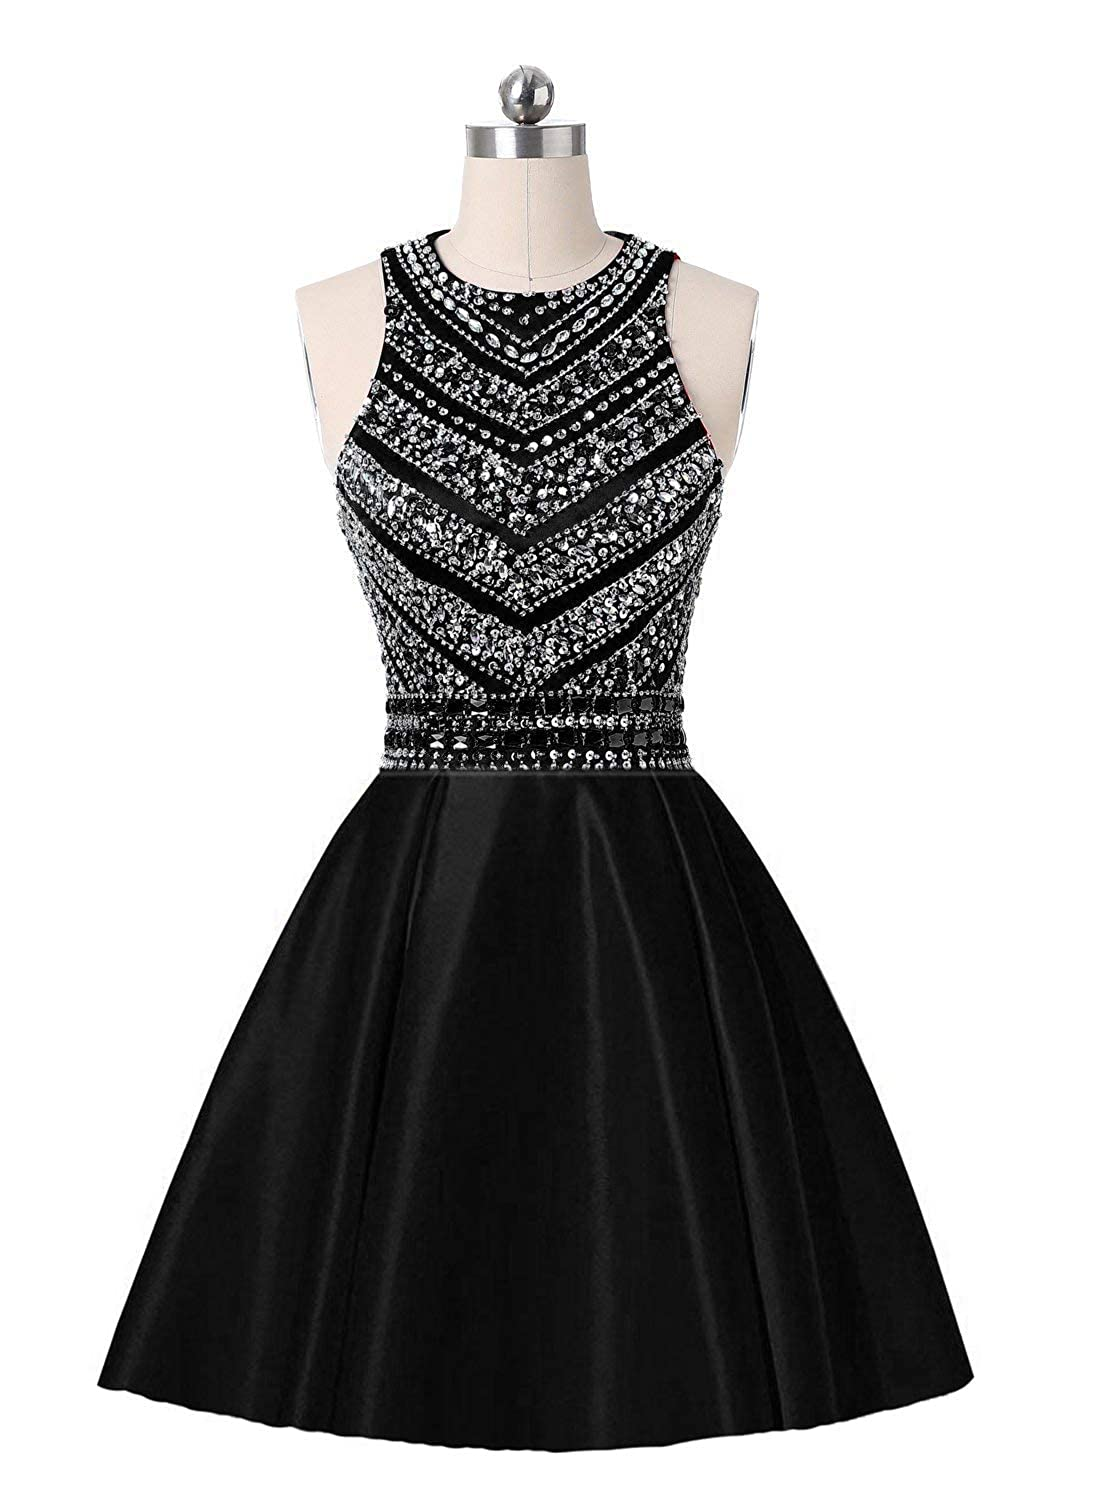 2cd6c63c586 Top 10 wholesale Short Sparkly Dresses For Juniors - Chinabrands.com